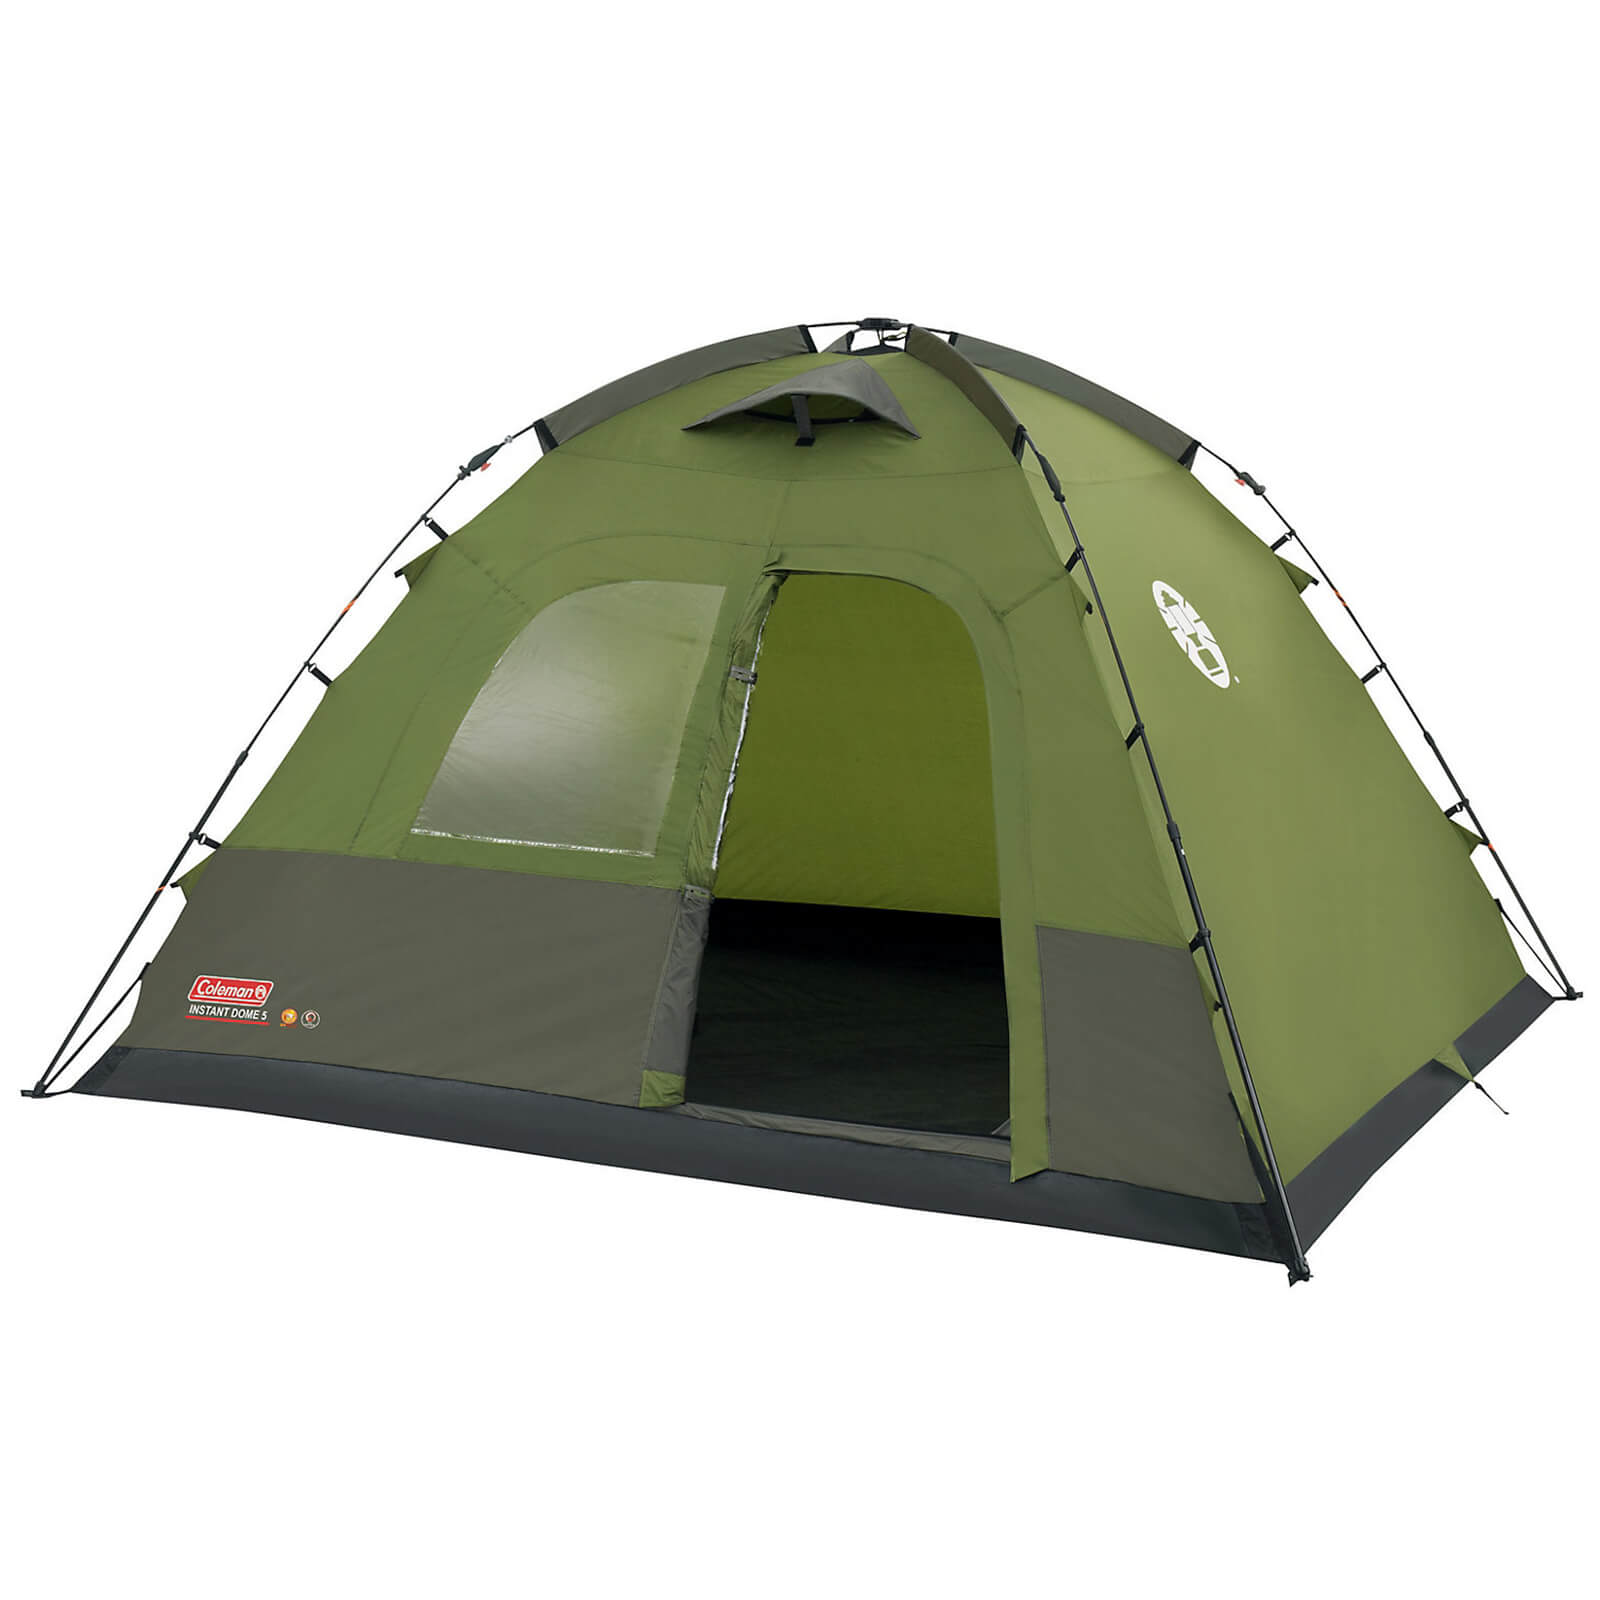 coleman max camping chair makeup walmart instant dome tent 5 person green iwoot